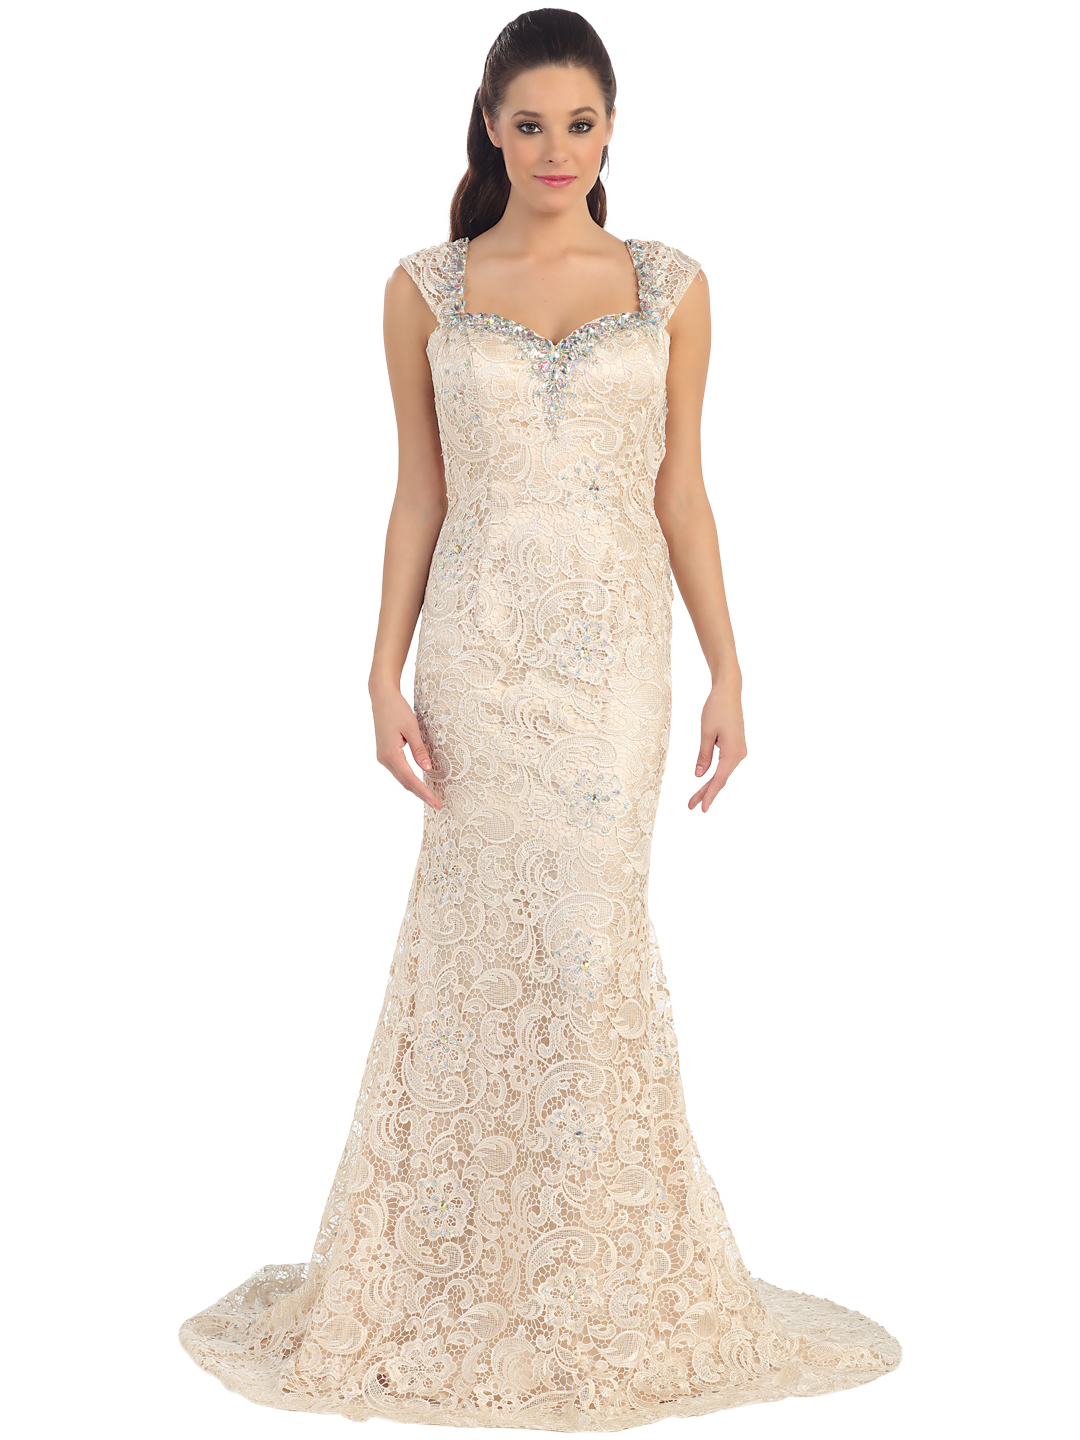 Beige lace evening dress